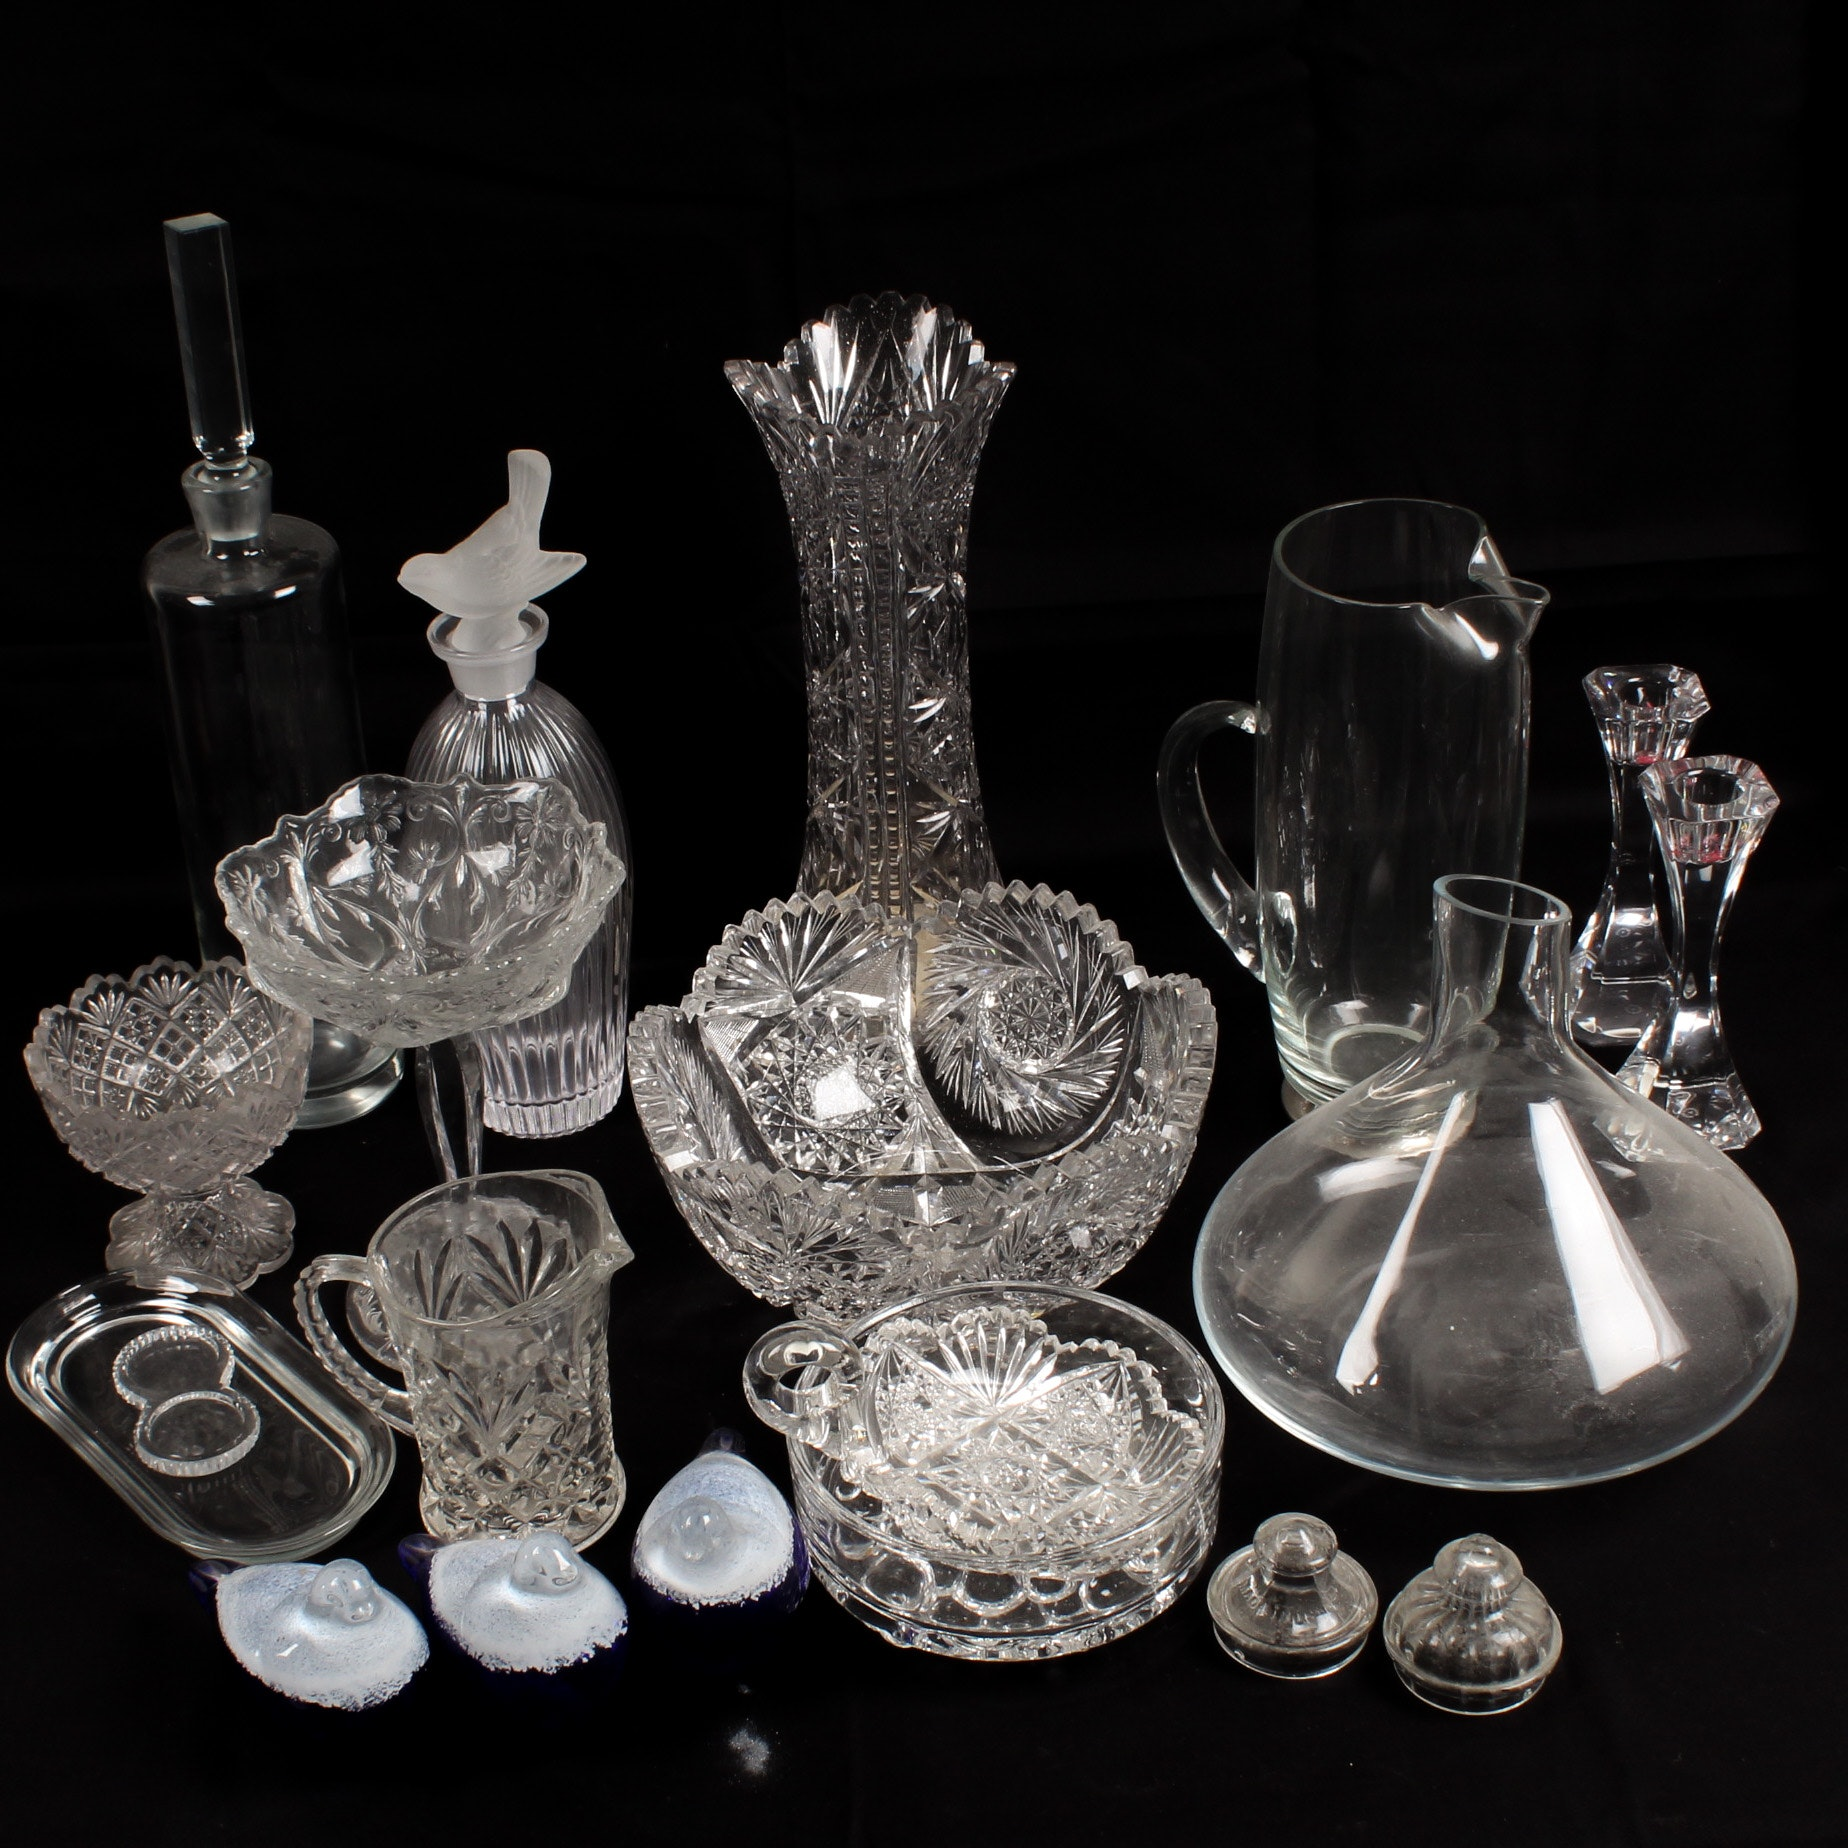 Glass Decor and Tableware Collection